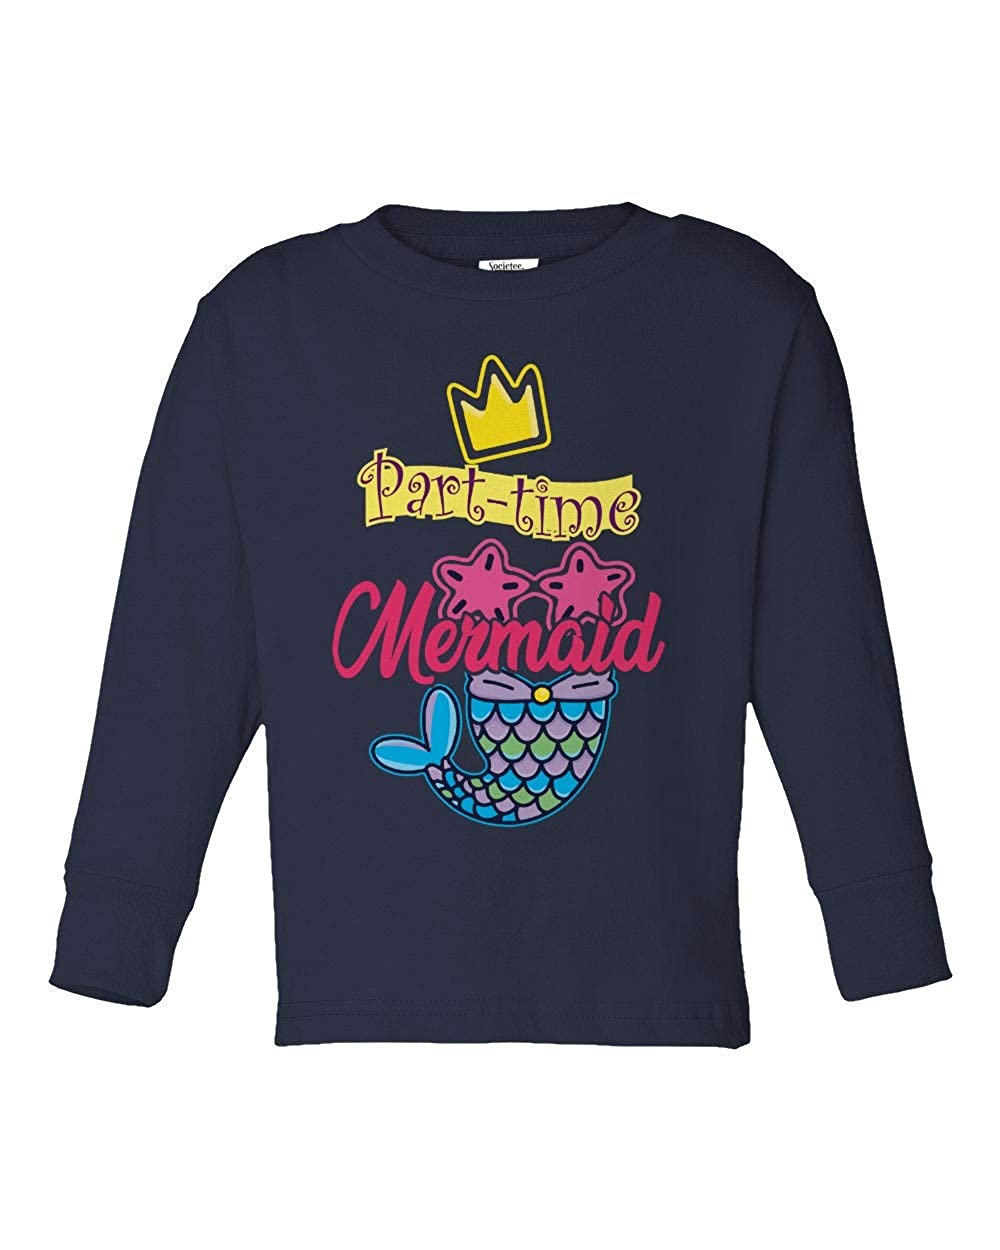 Societee Part-Time Mermaid Cute Adorable Girls Toddler Long Sleeve T-Shirt